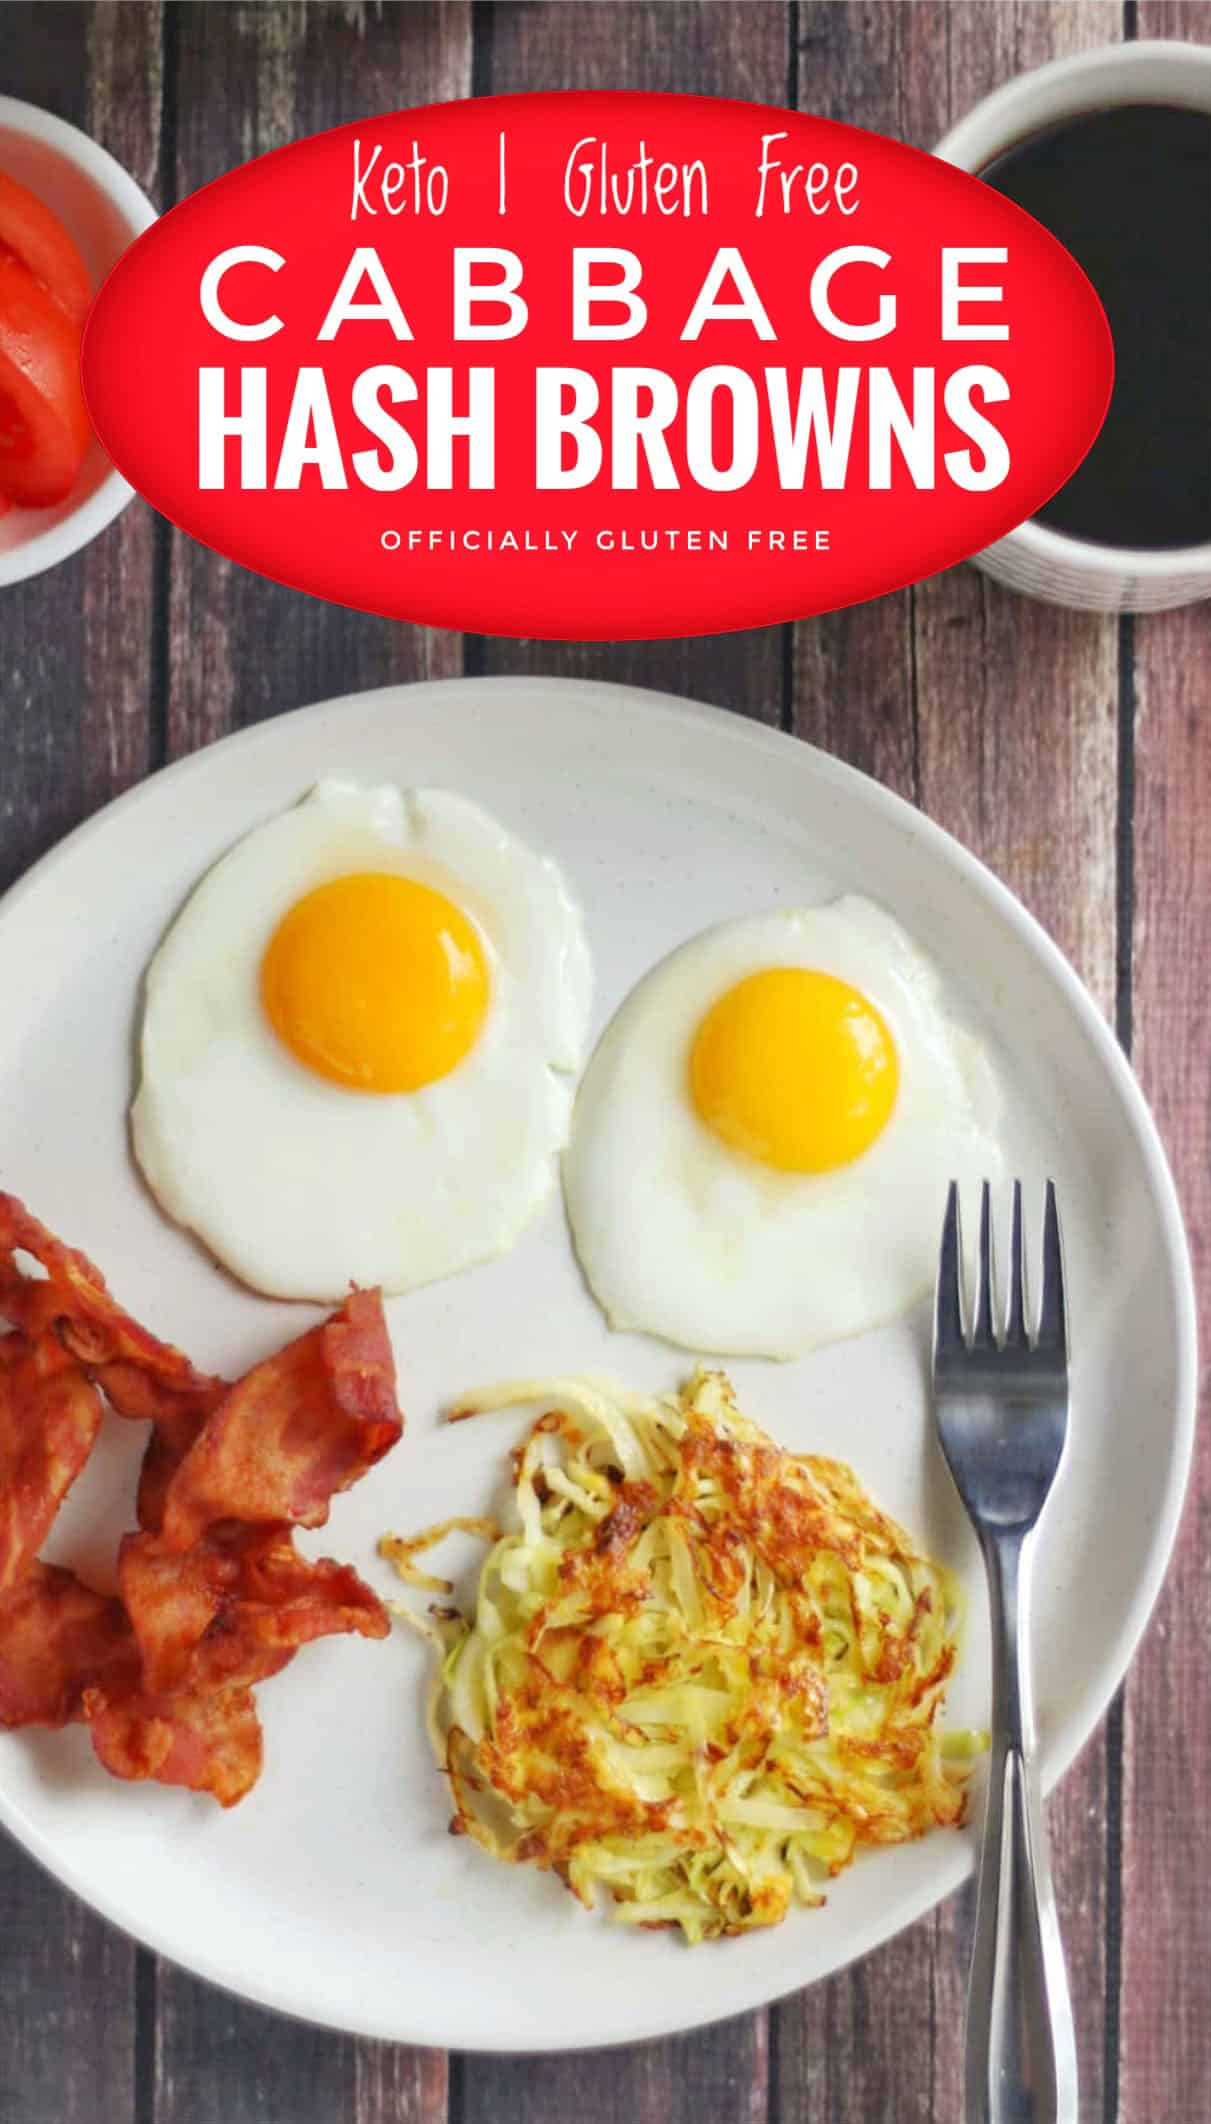 Keto Cabbage Hash Browns